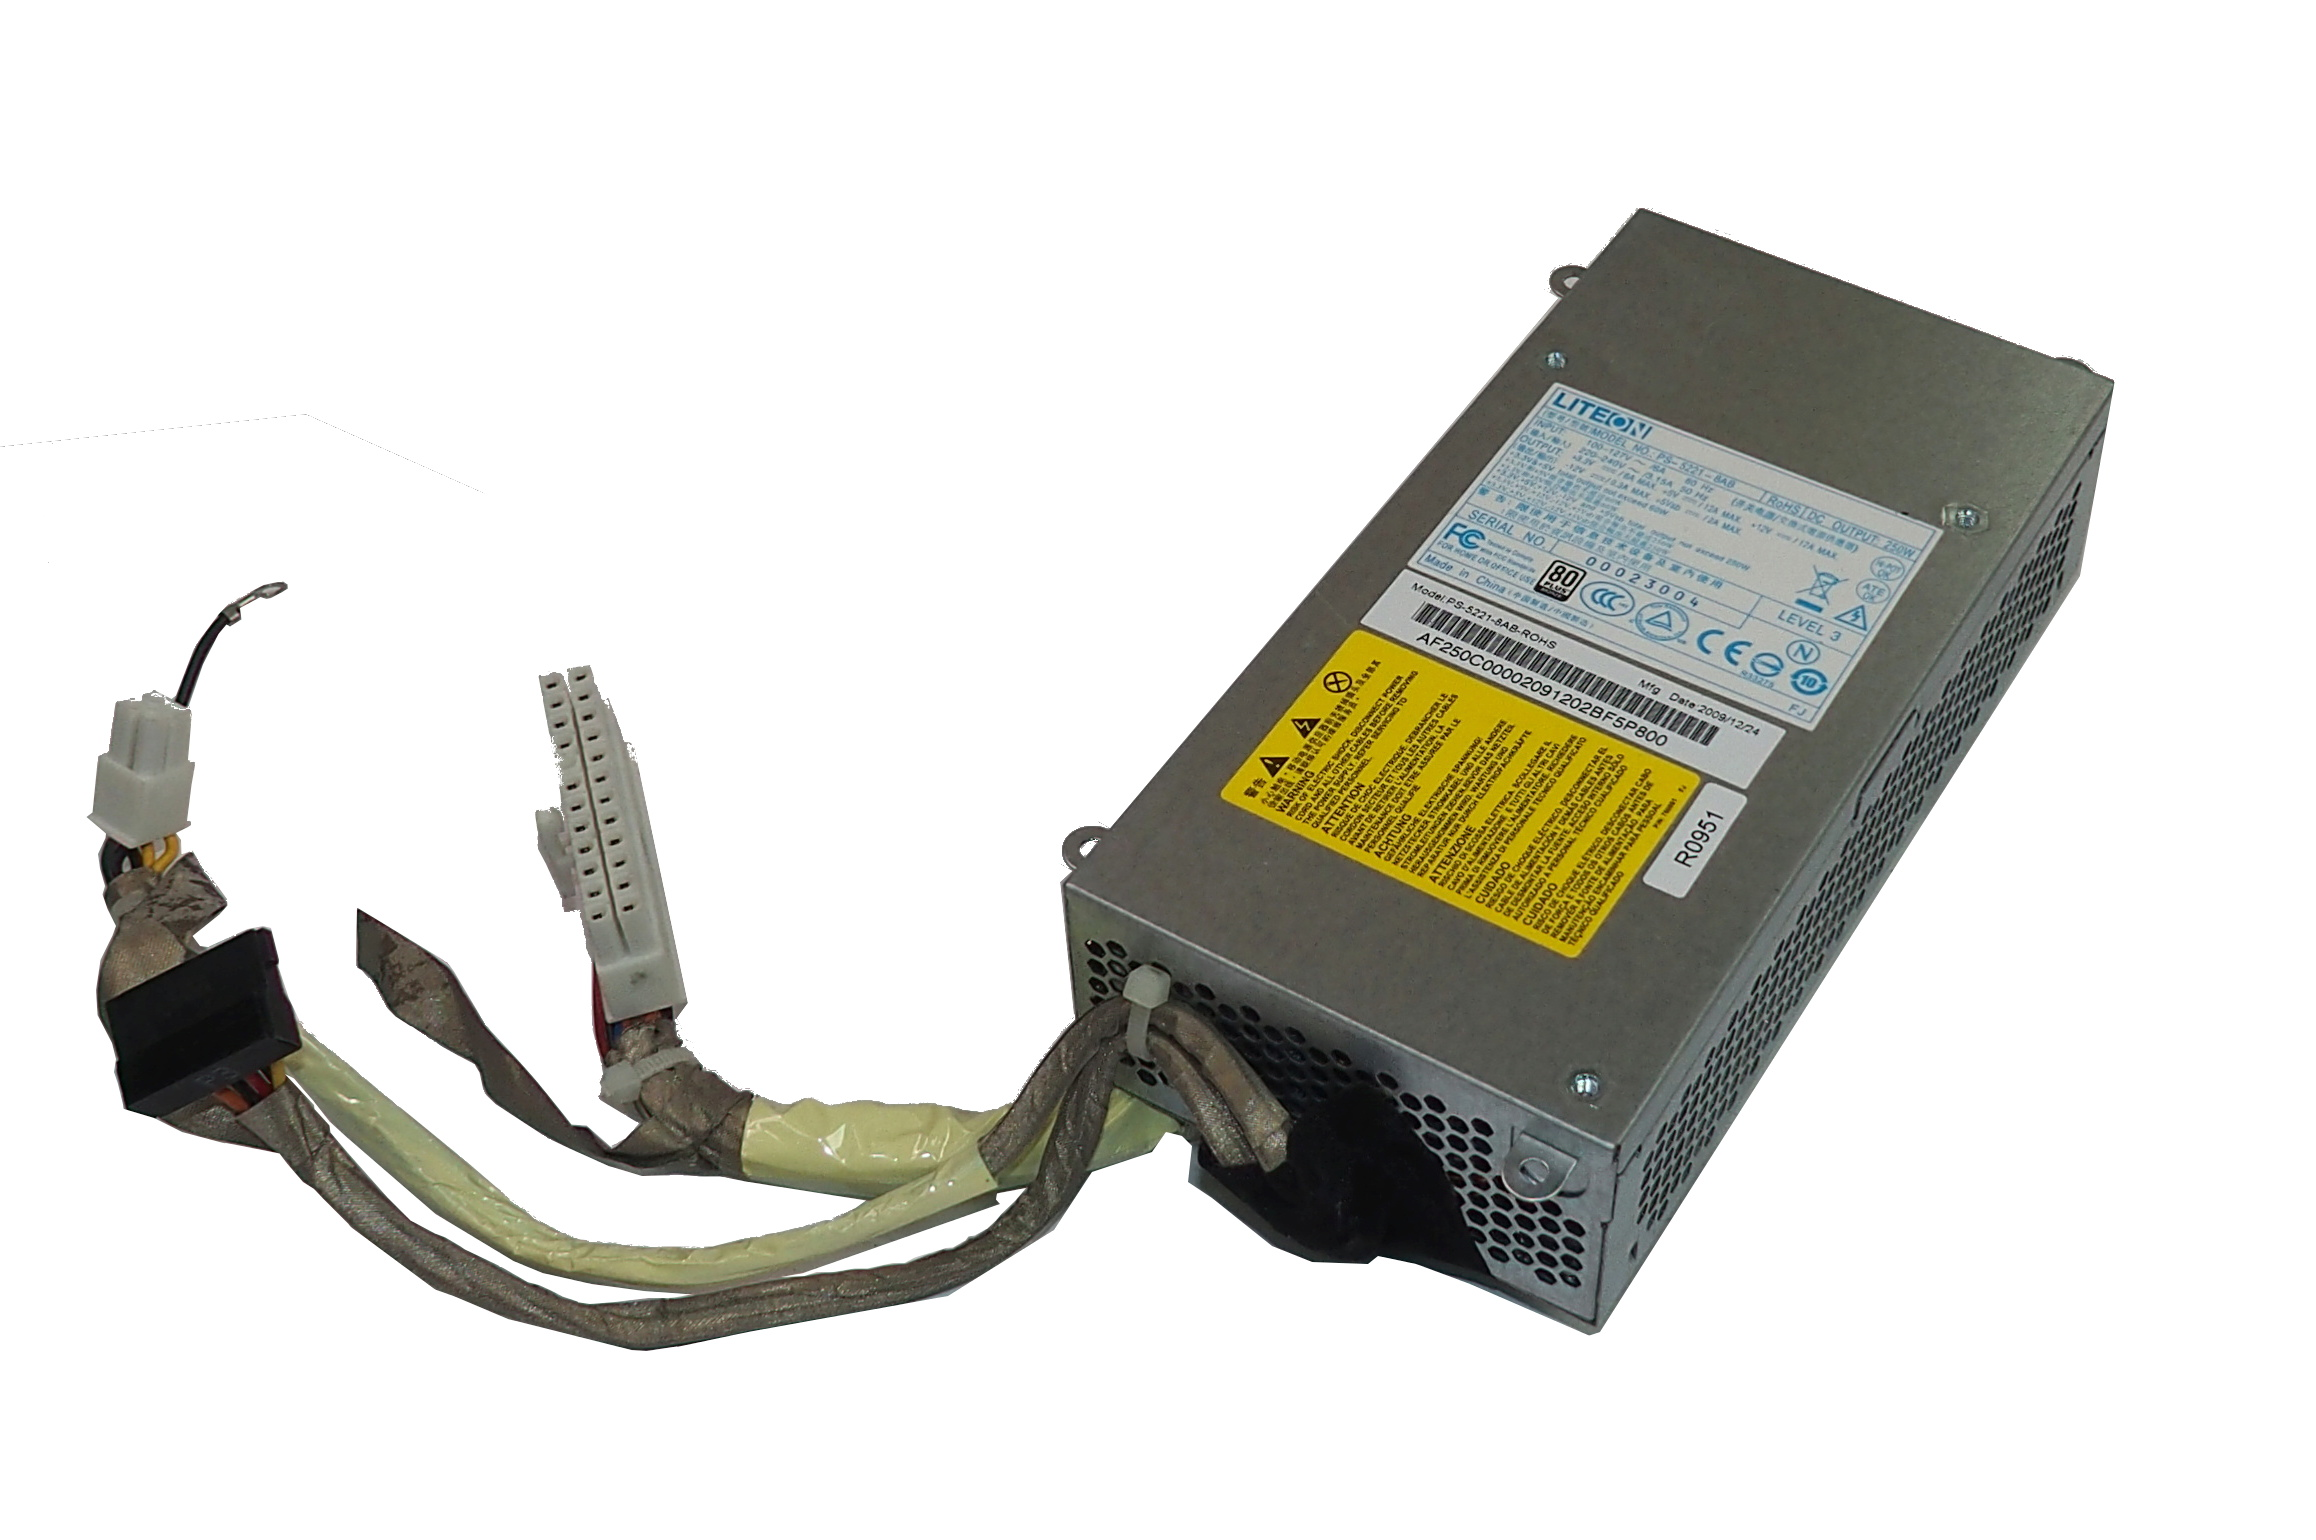 Lite-On PS-5221-8AB 250W PSU /f Acer Z5600/Z5700 AiO Packard Bell OneTwo L5710